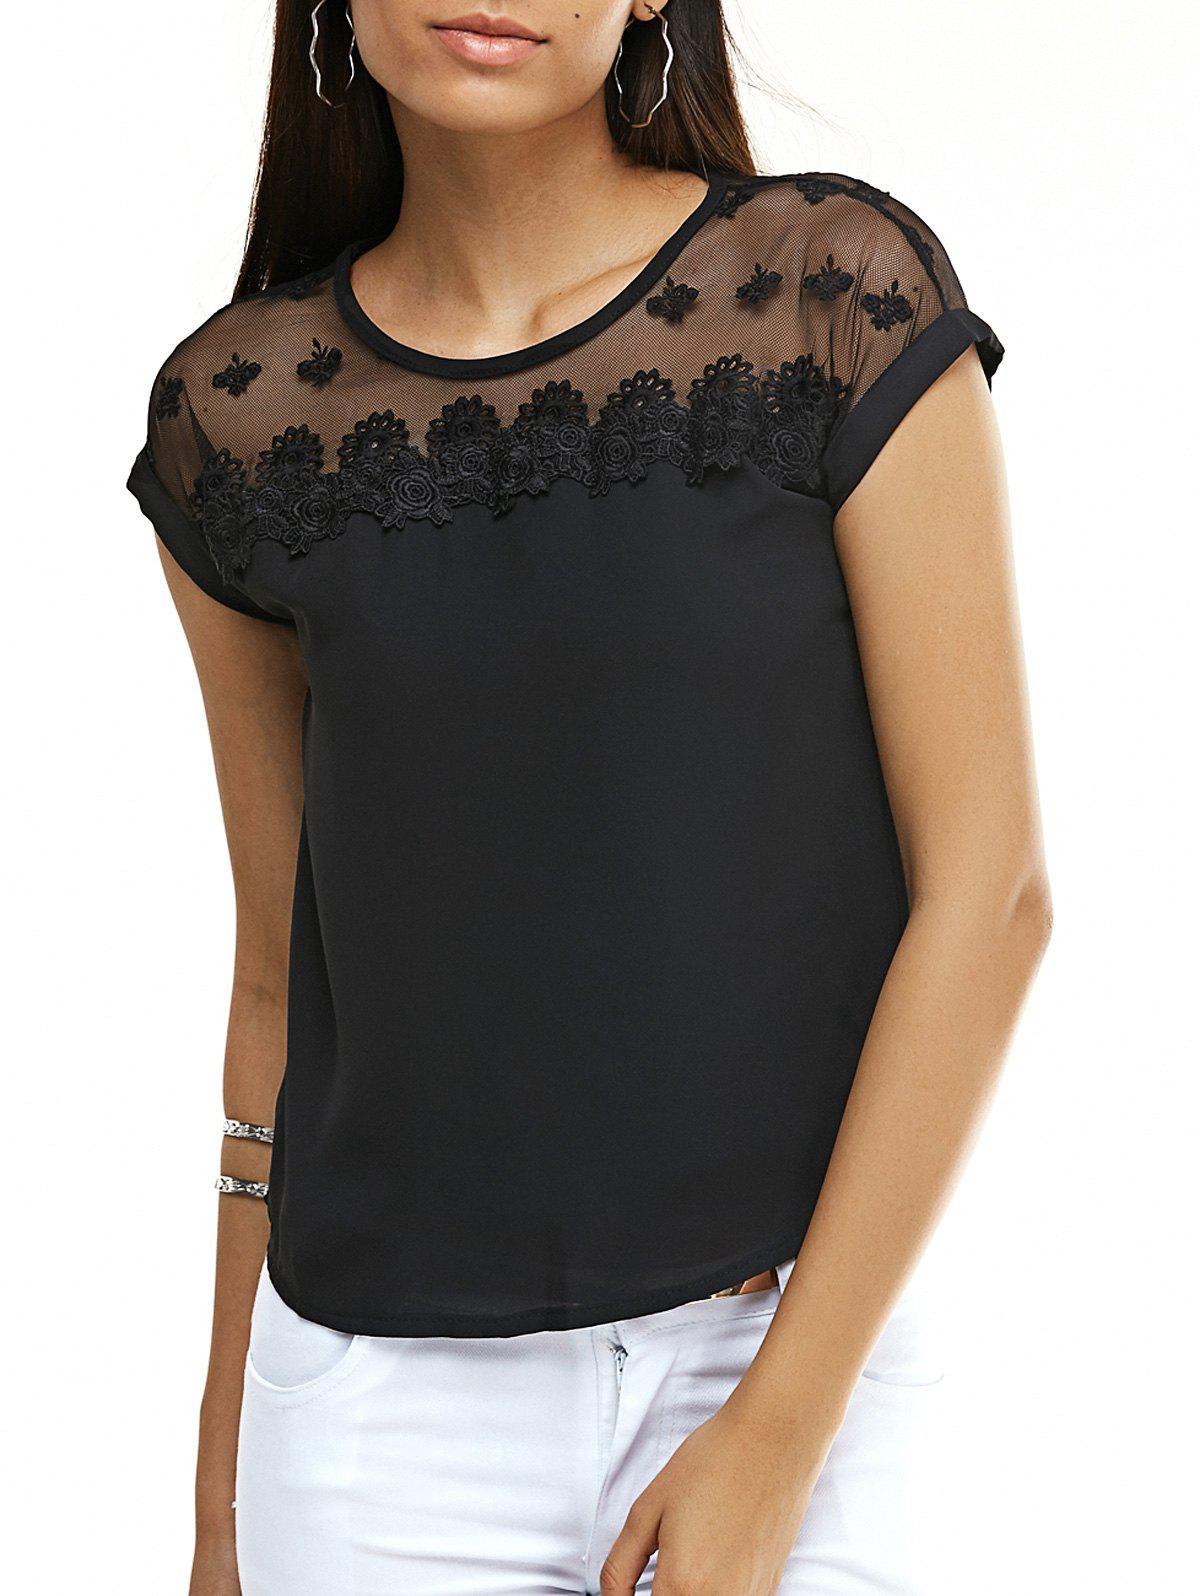 Sweet Floral See-Through Chiffon T-Shirt For Women - BLACK 3XL